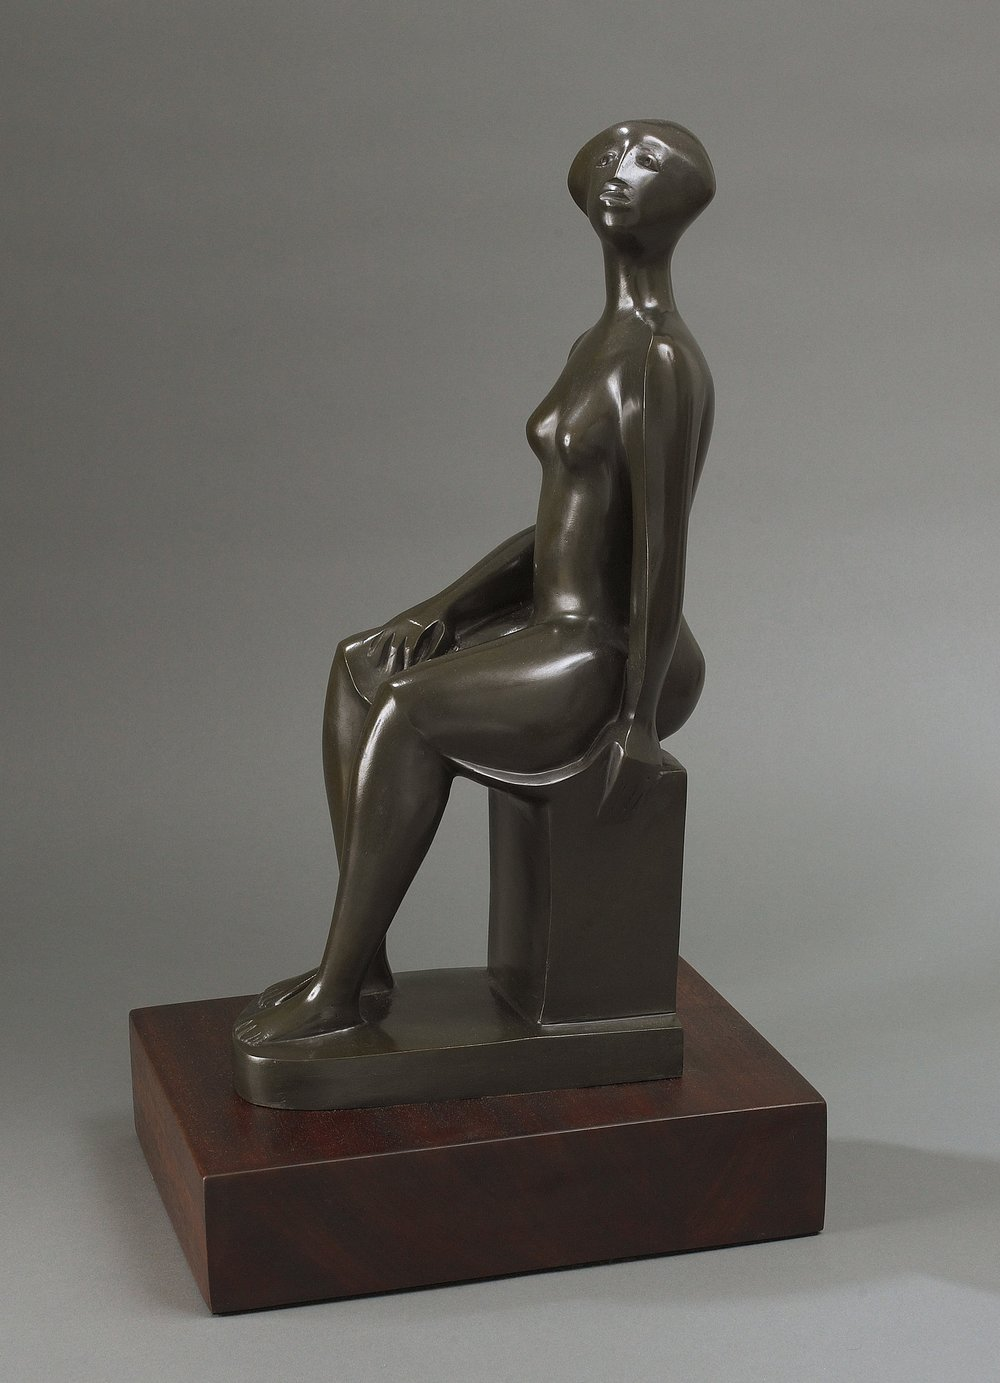 Mujer Sentada, c. 2003, bronze sculpture, 17 1/2 x 6 x 9 inches, signed with monogram